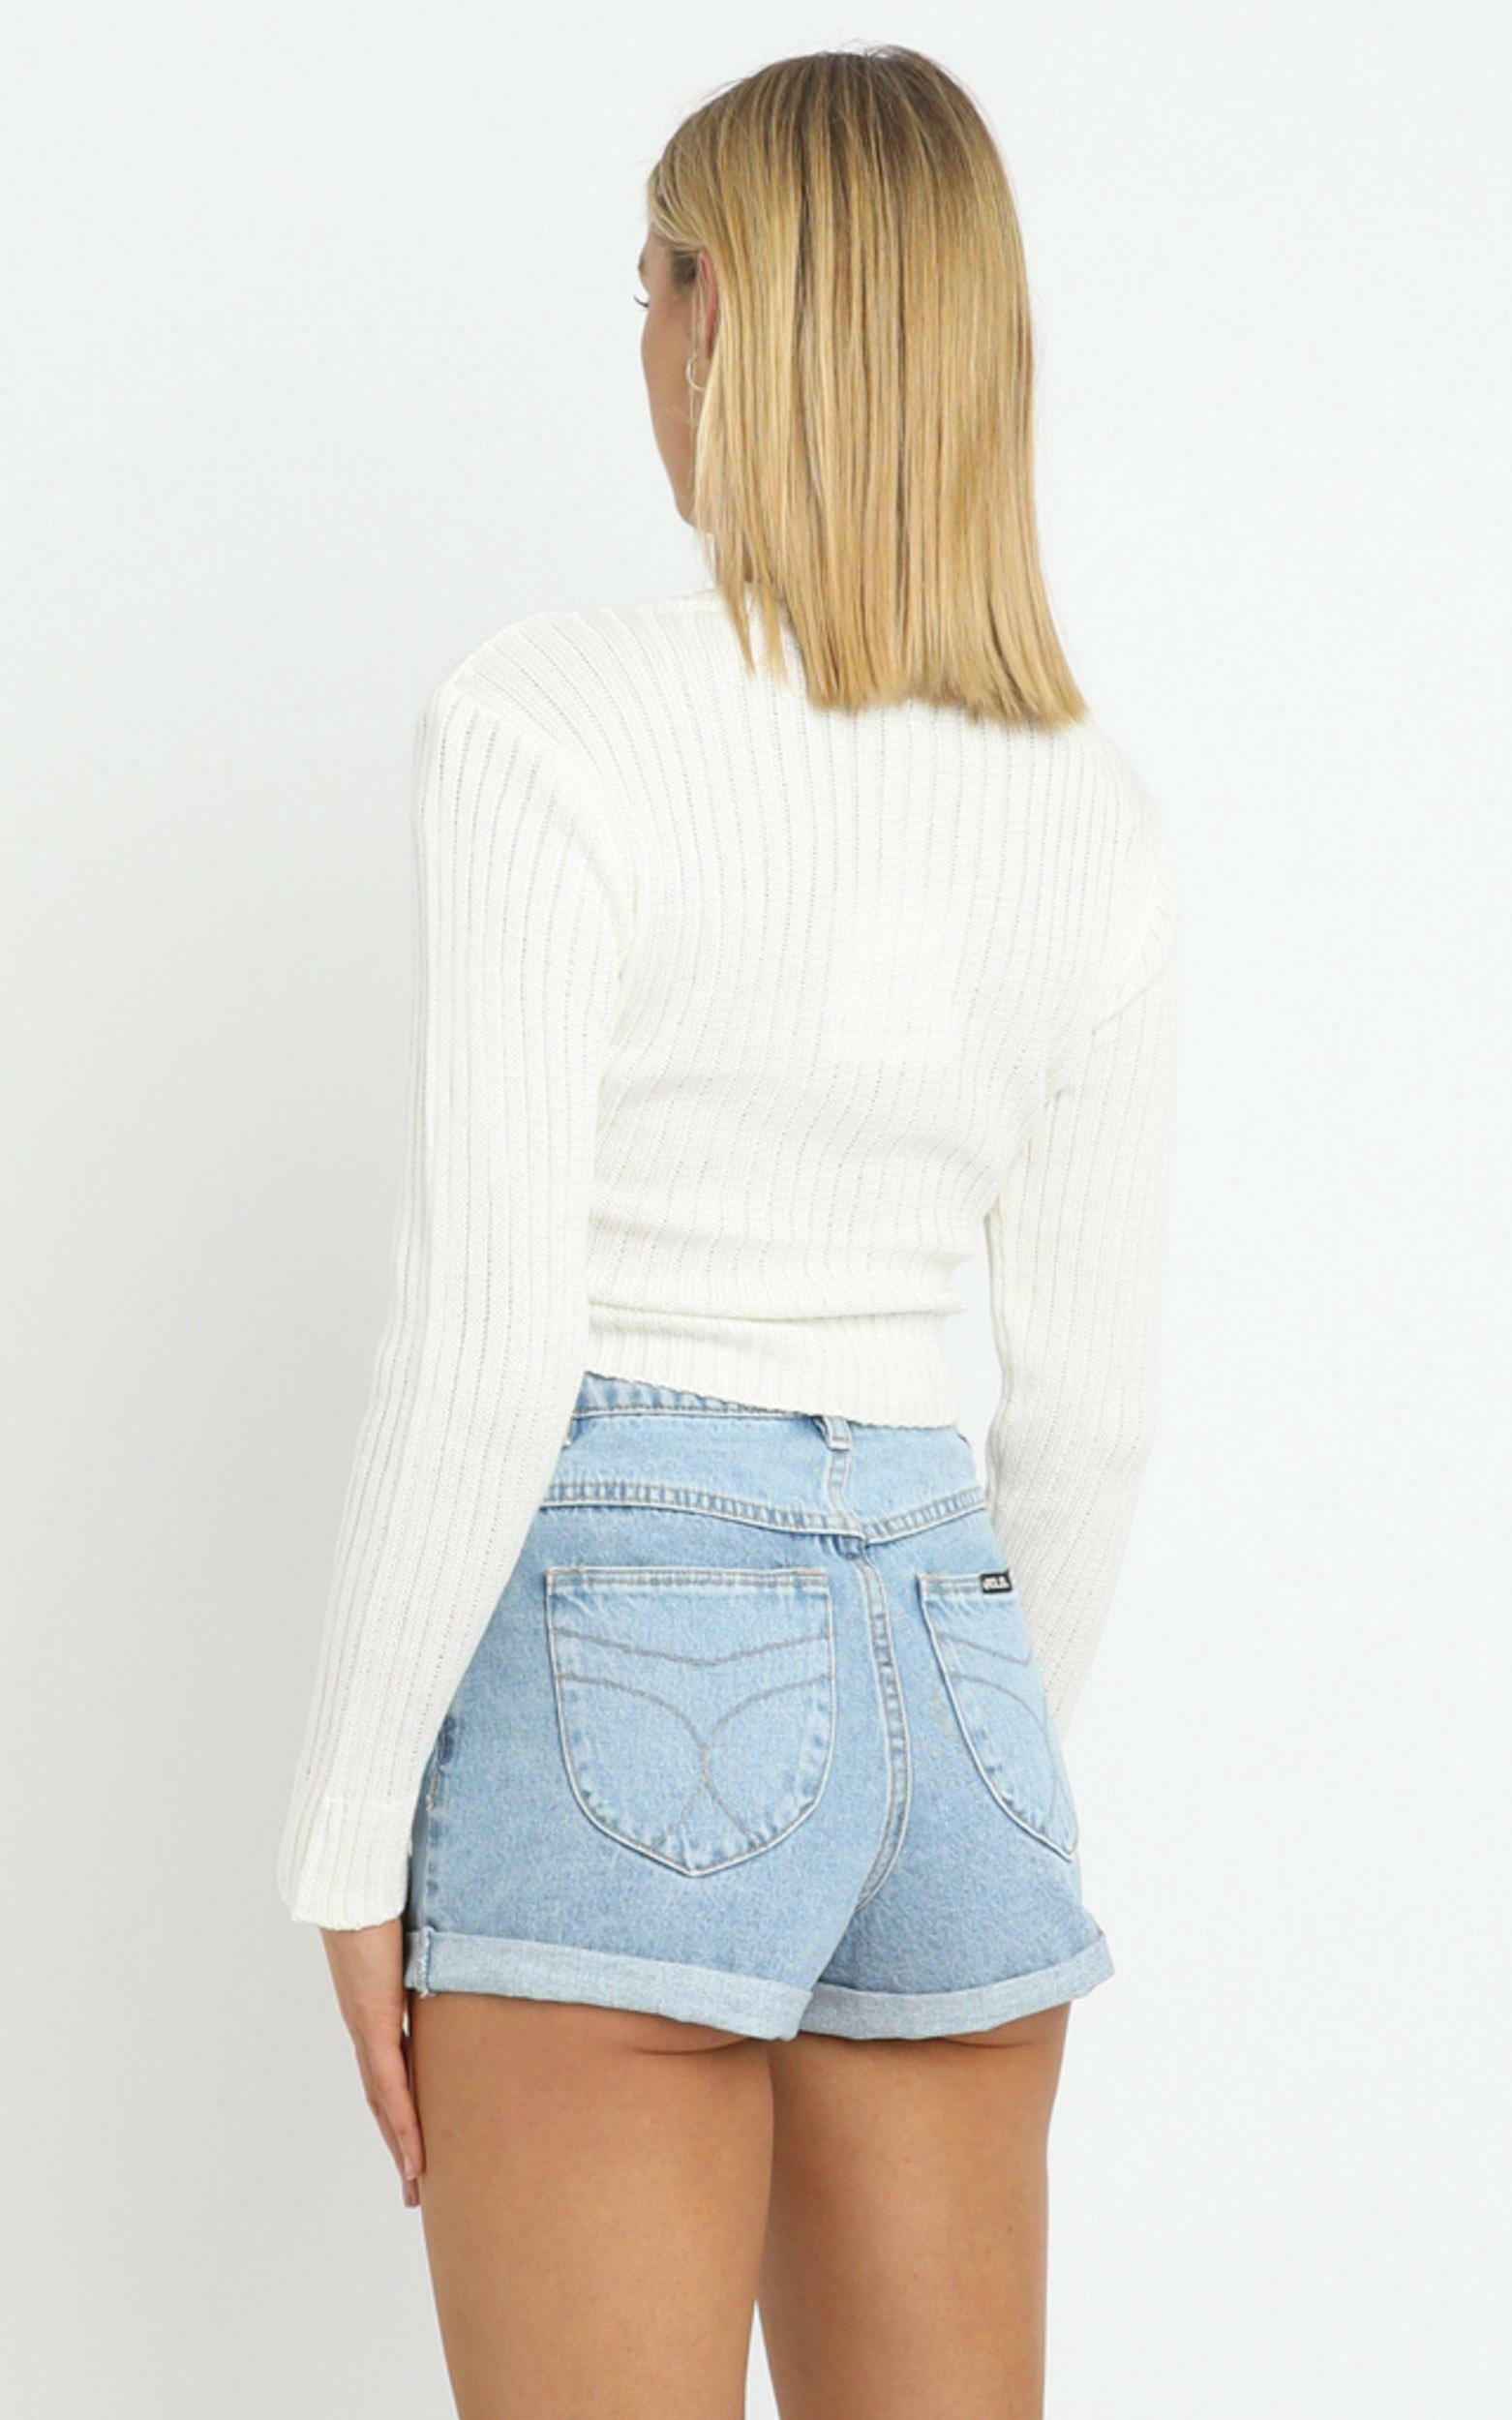 Leandra Knit Top in White, WHT1, hi-res image number null